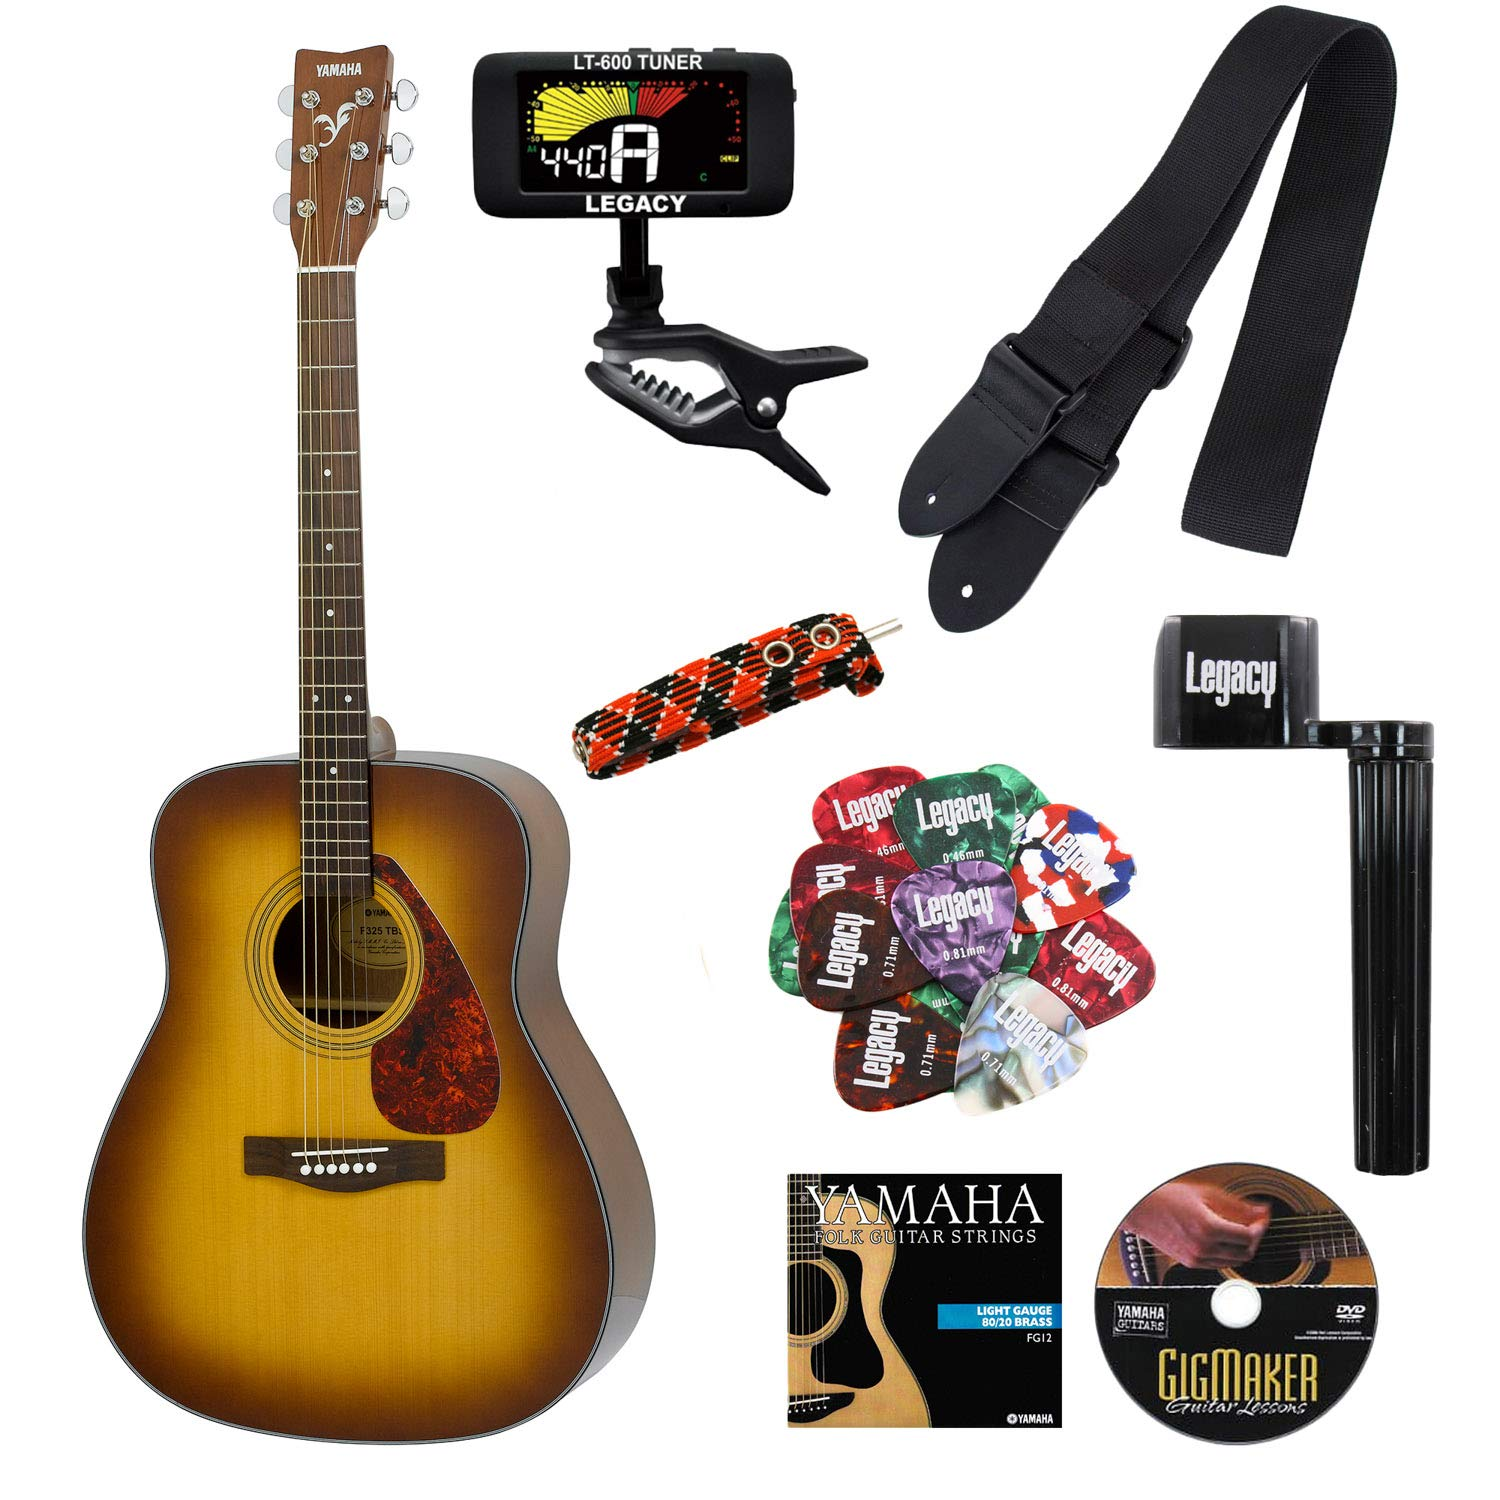 Yamaha F325D Folk Guitar with Legacy Accessory Bundle